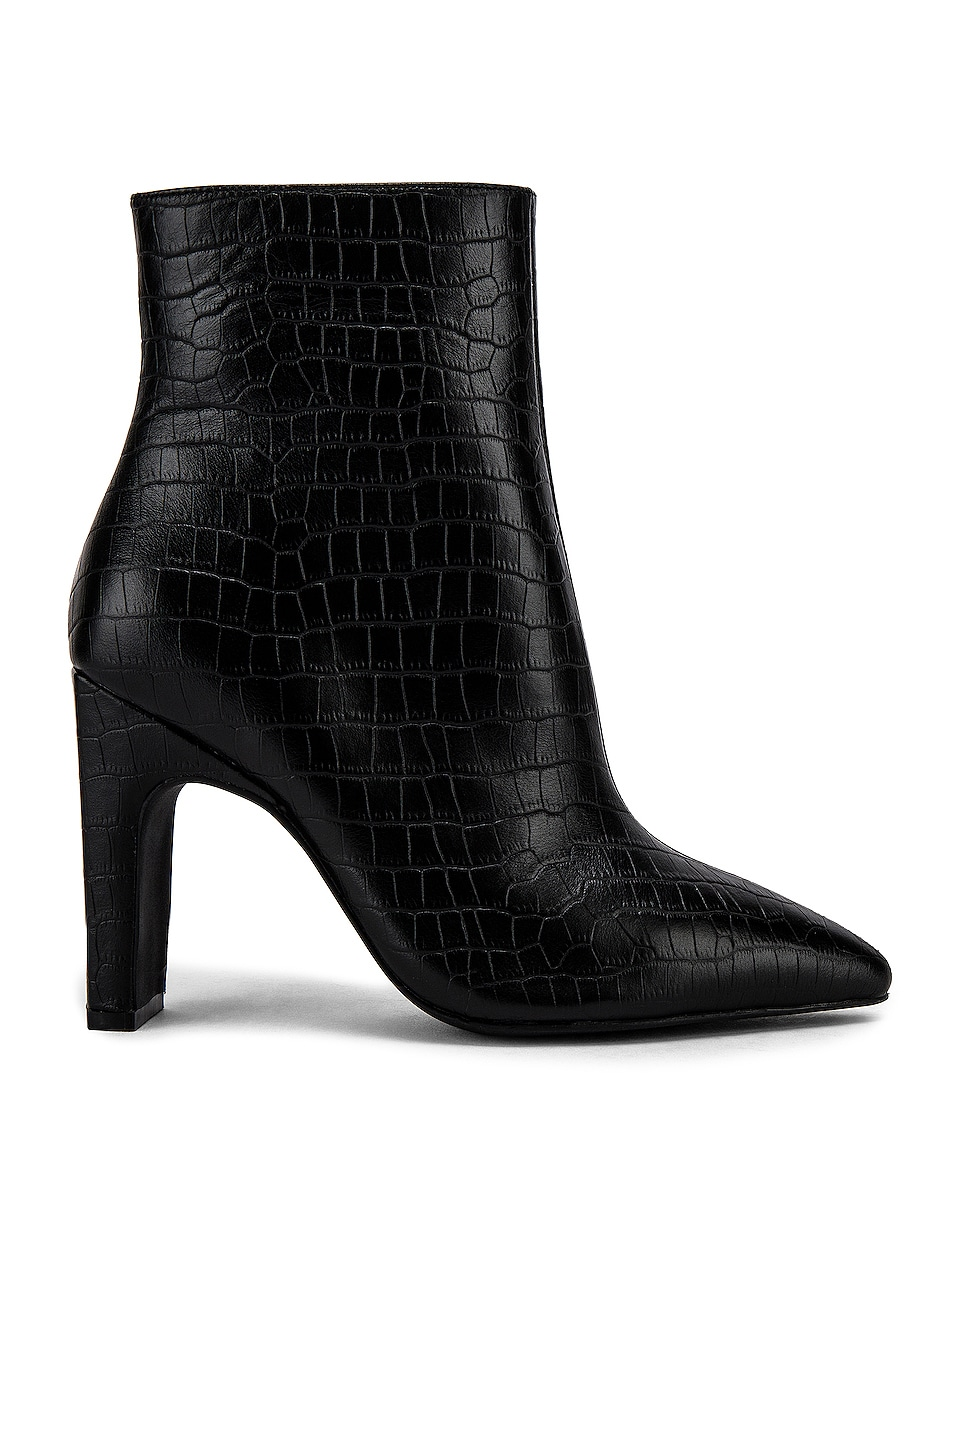 Sol Sana Scottie Bootie in Black Croc